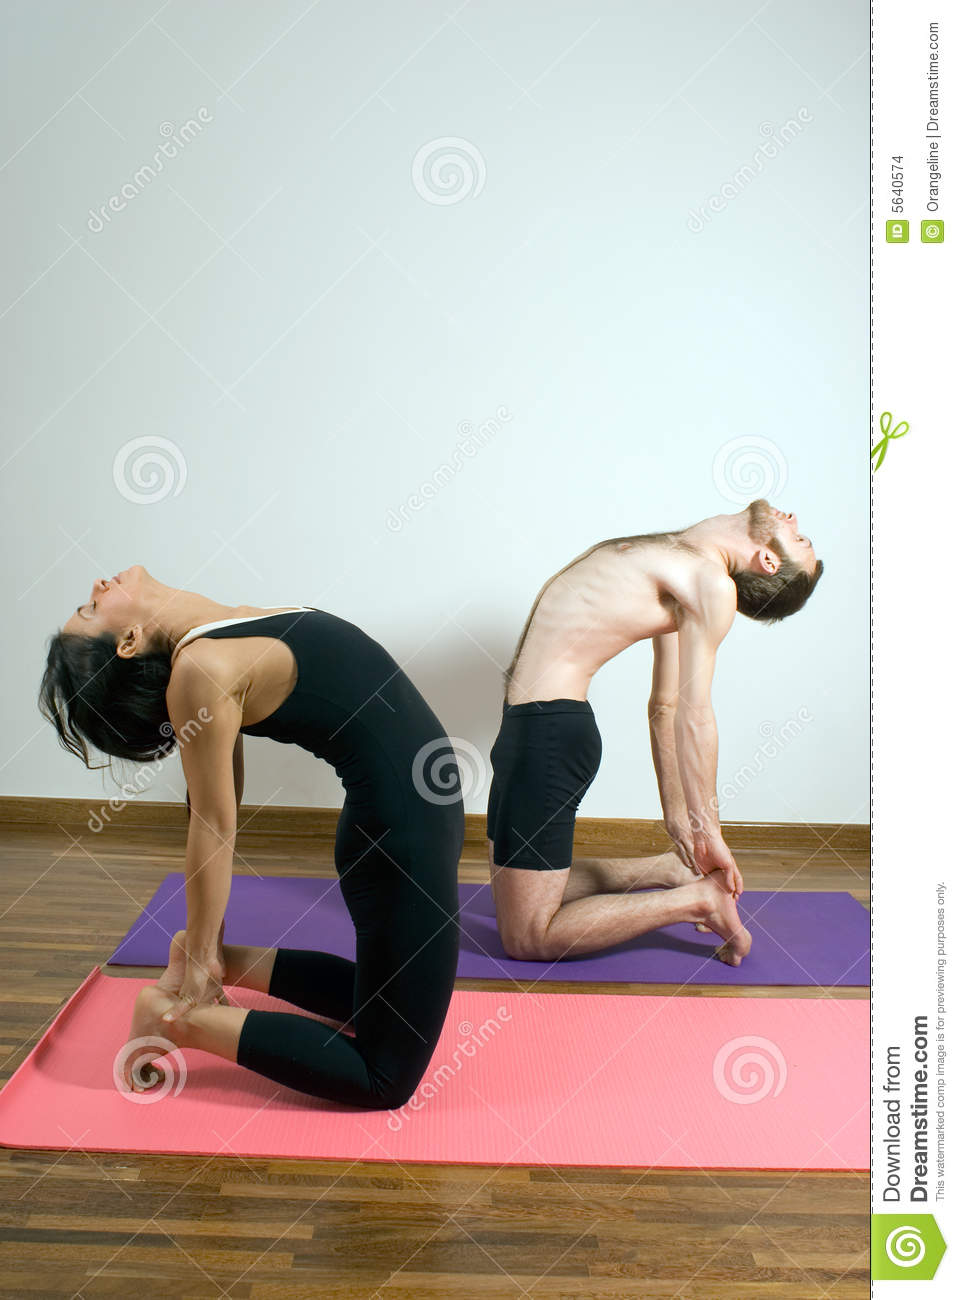 Two People In A Yoga Pose